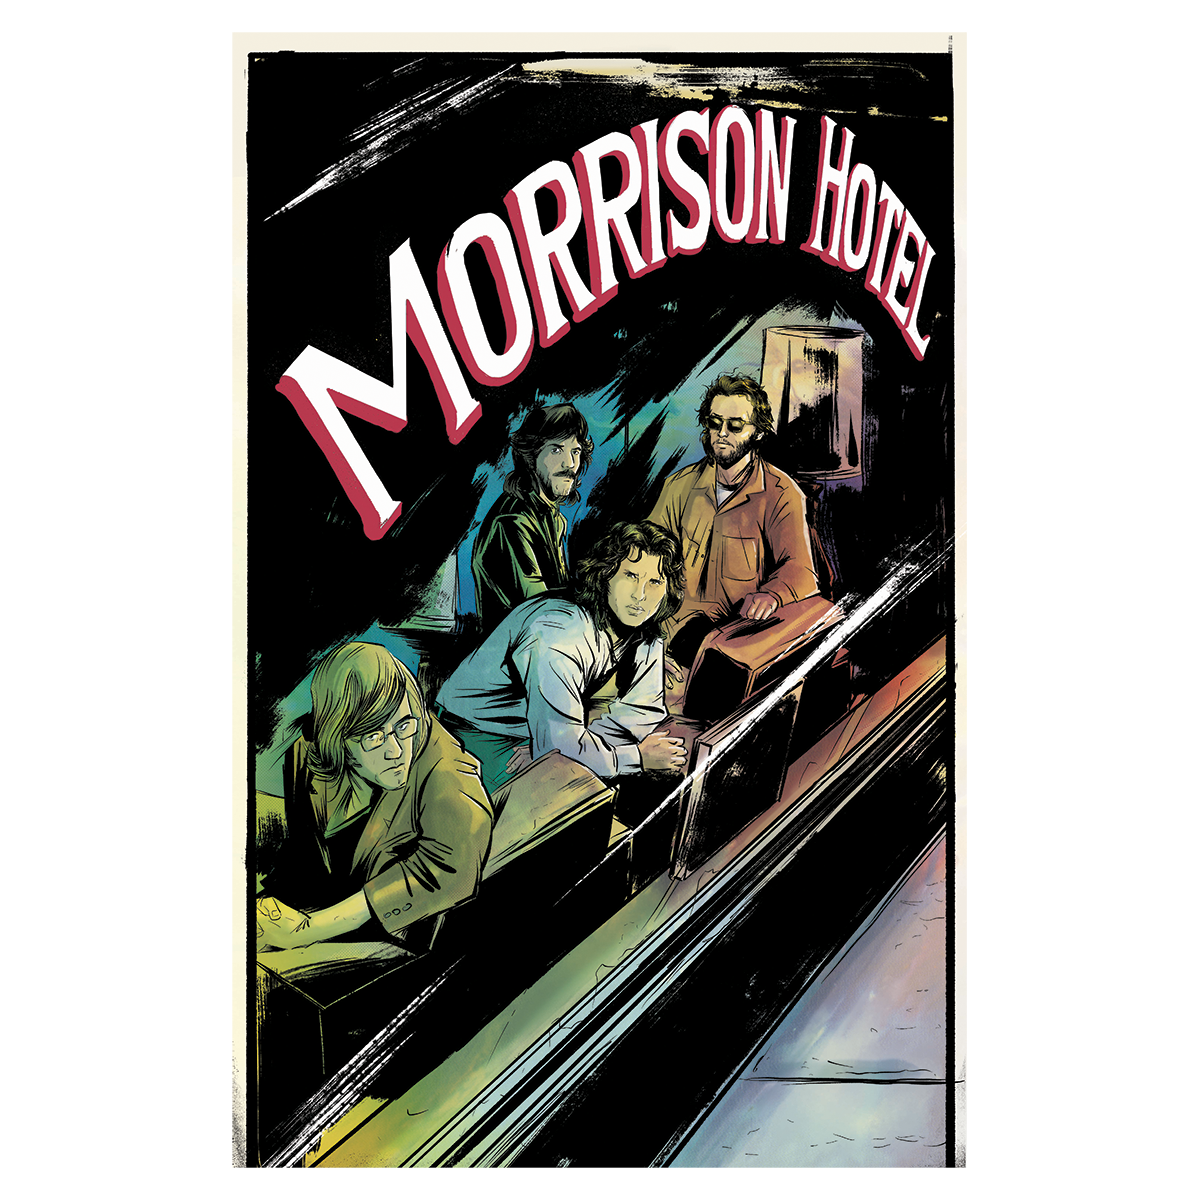 Morrison Hotel Graphic Novel - Standard Edition